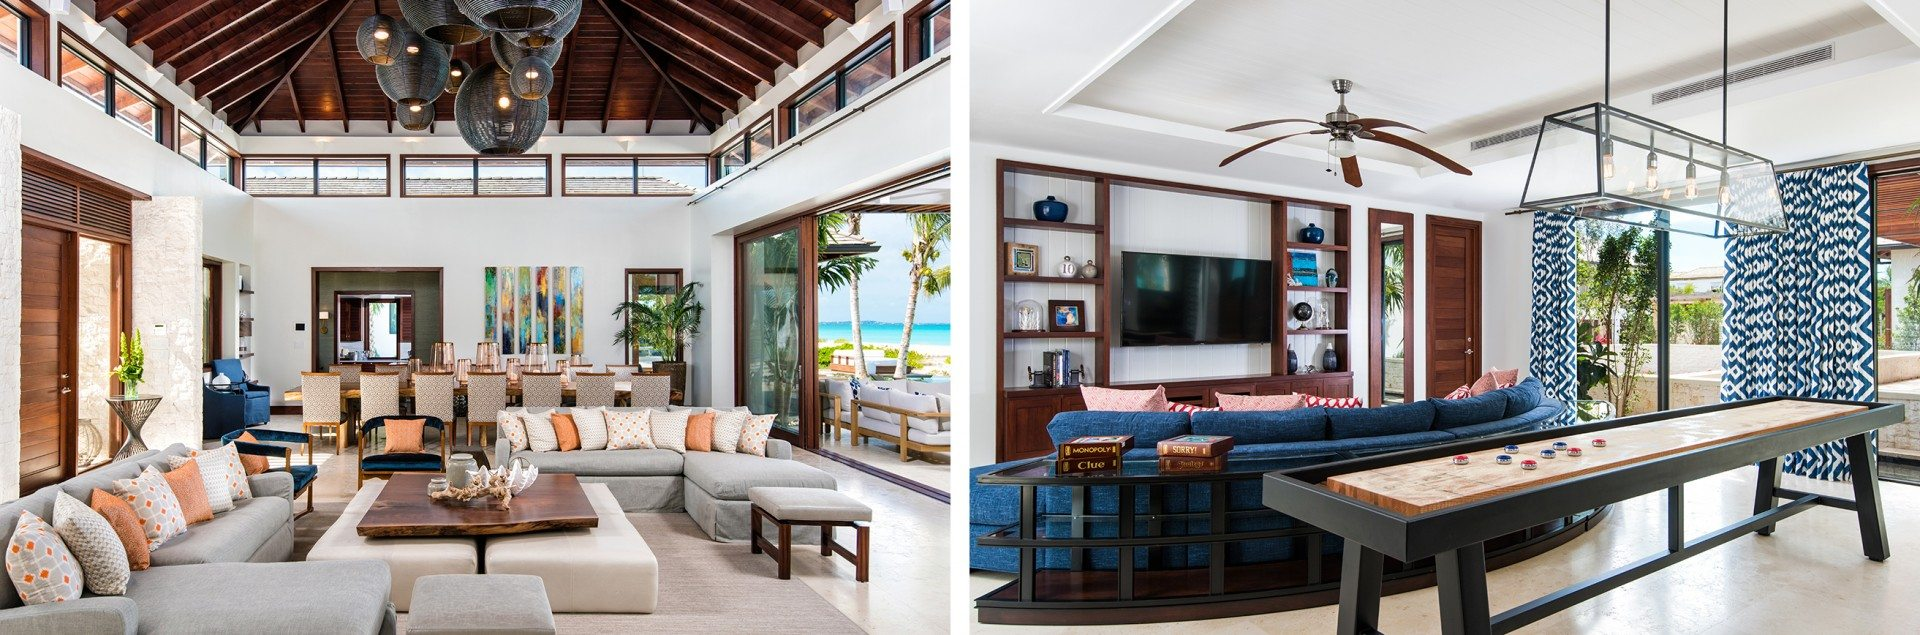 hawksbill living rooms